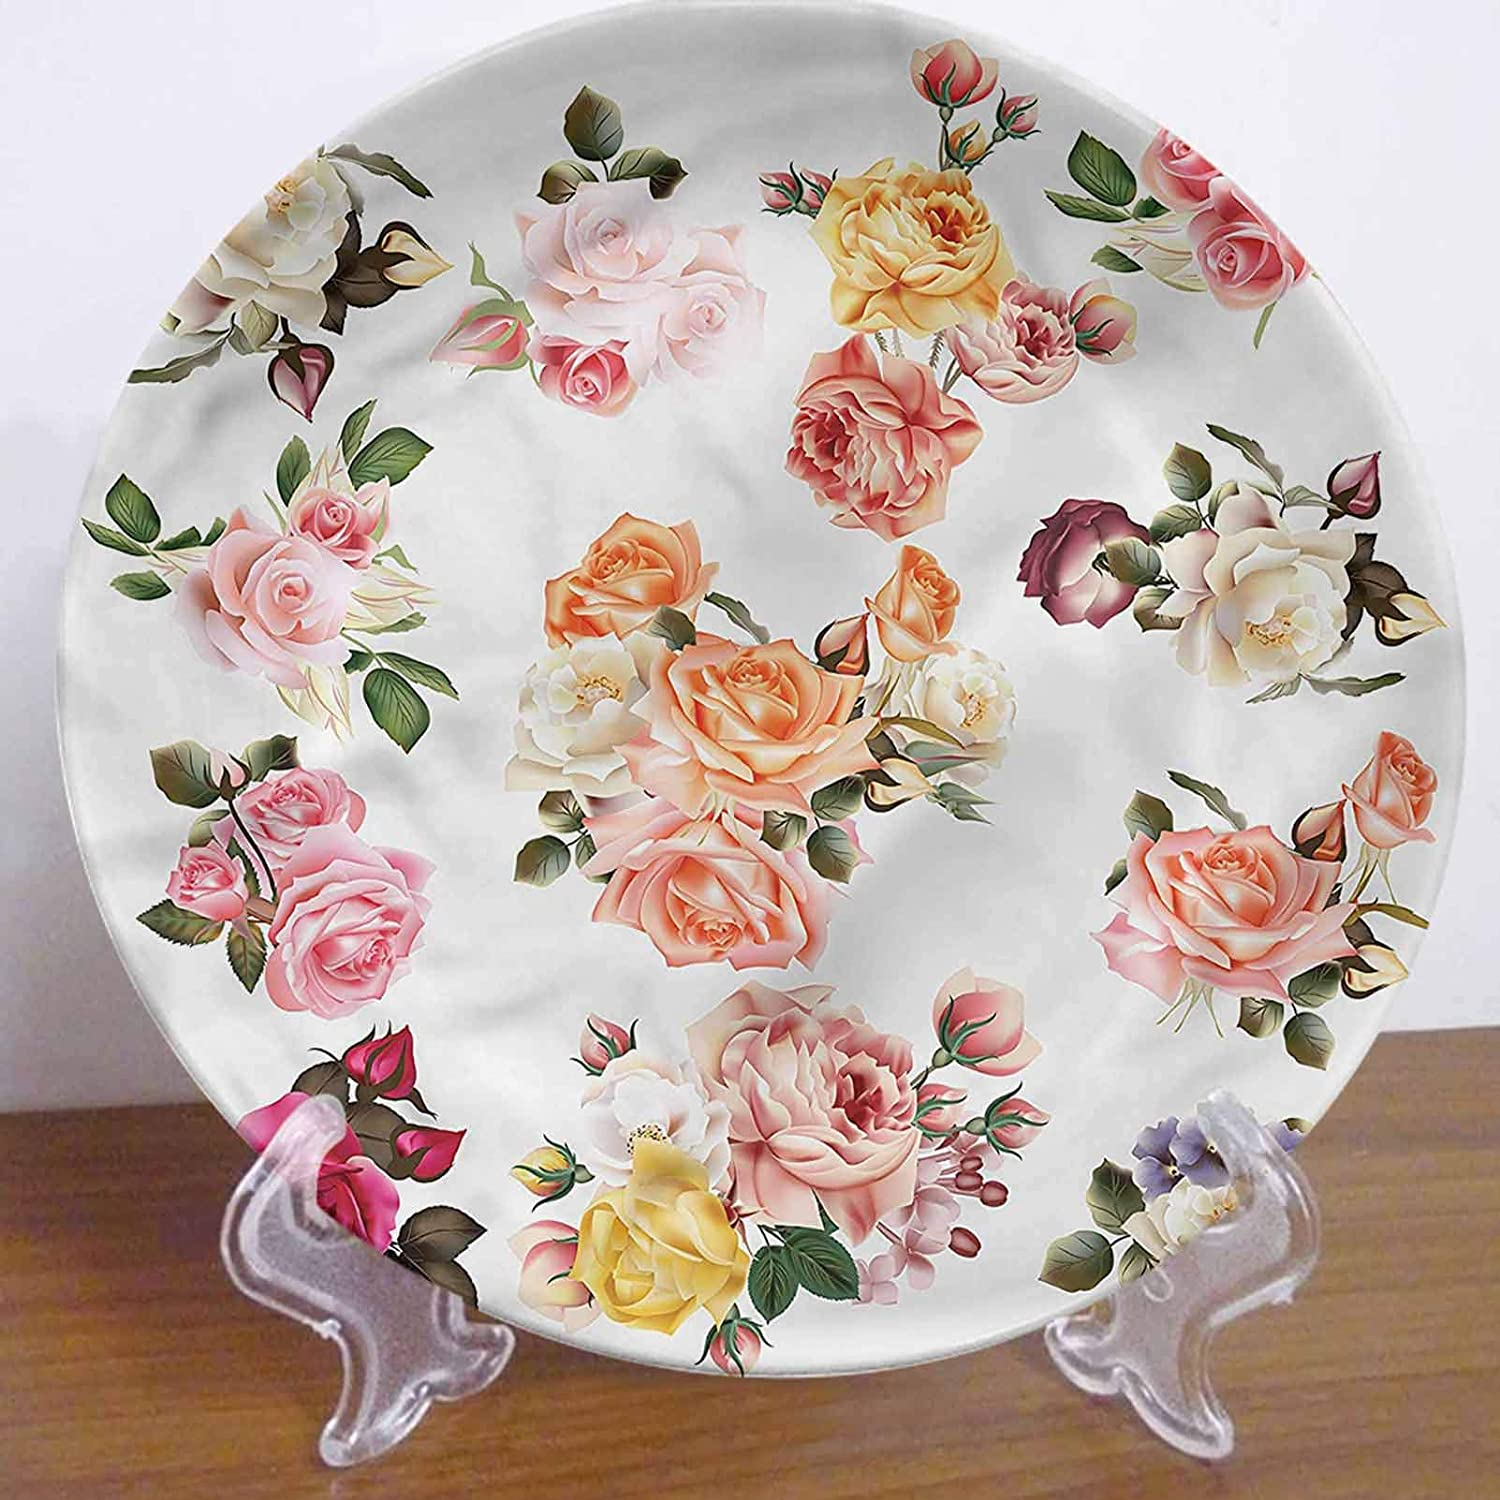 10 Inch Flower Pattern Ceramic Hanging Decorative Plate,Realistic Roses with Leaves Tableware Plate Ceramic Ornament for Home&Office Wall Decors Family Sentiment